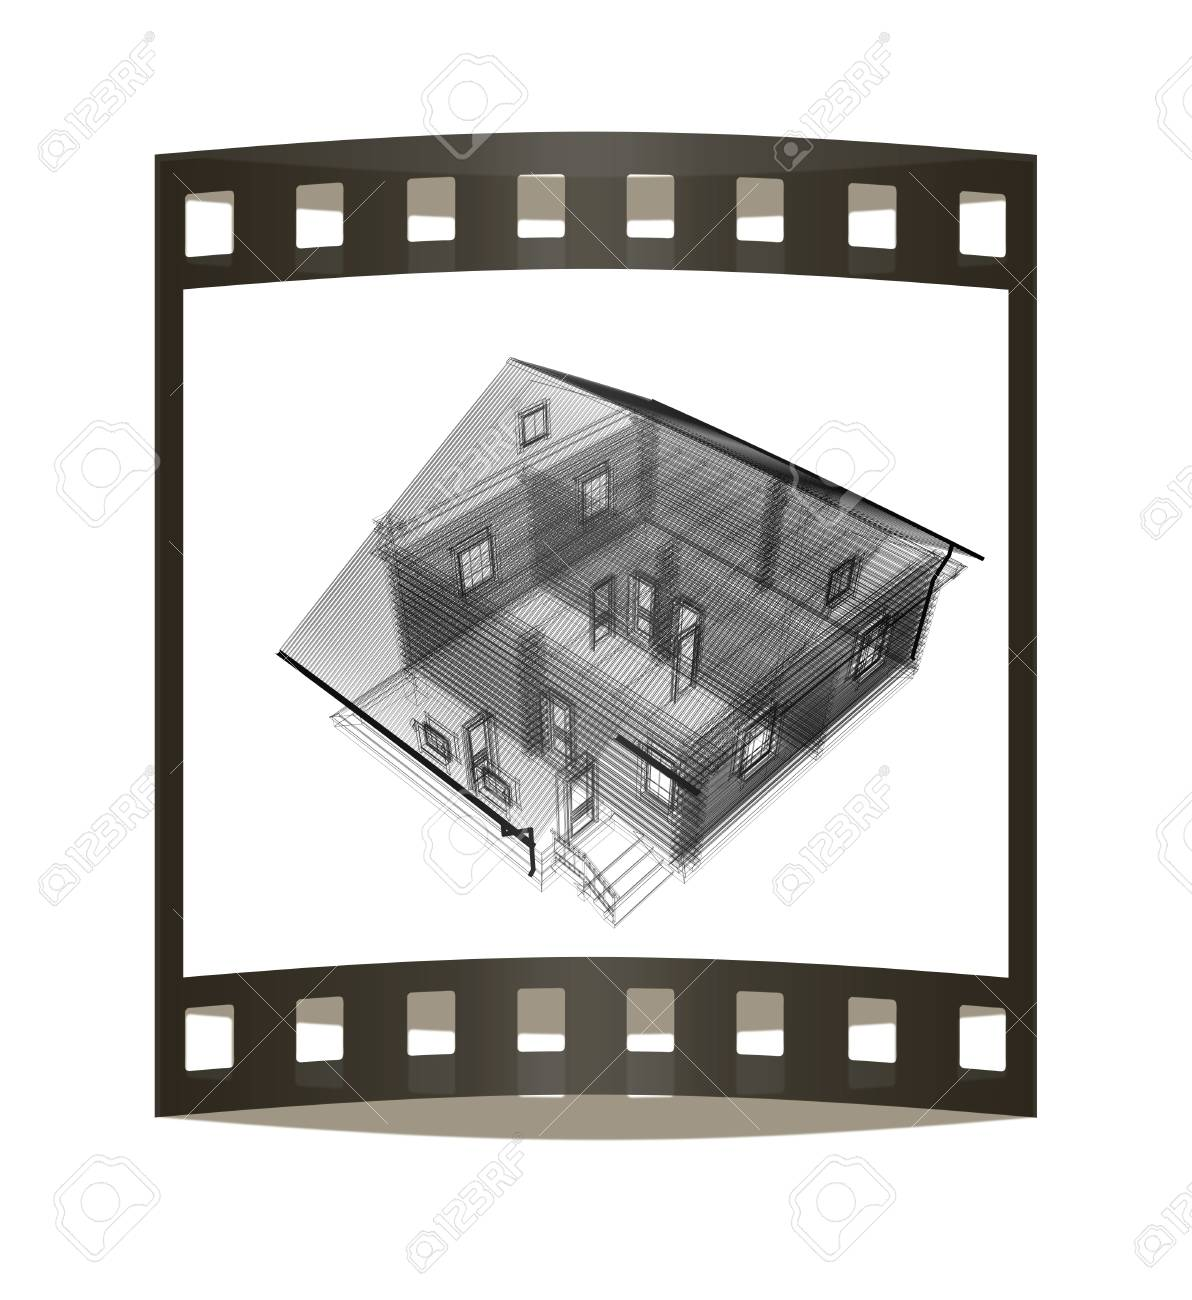 1192x1300 Line Drawing Of House. Top View. 3d Illustration. The Film Strip